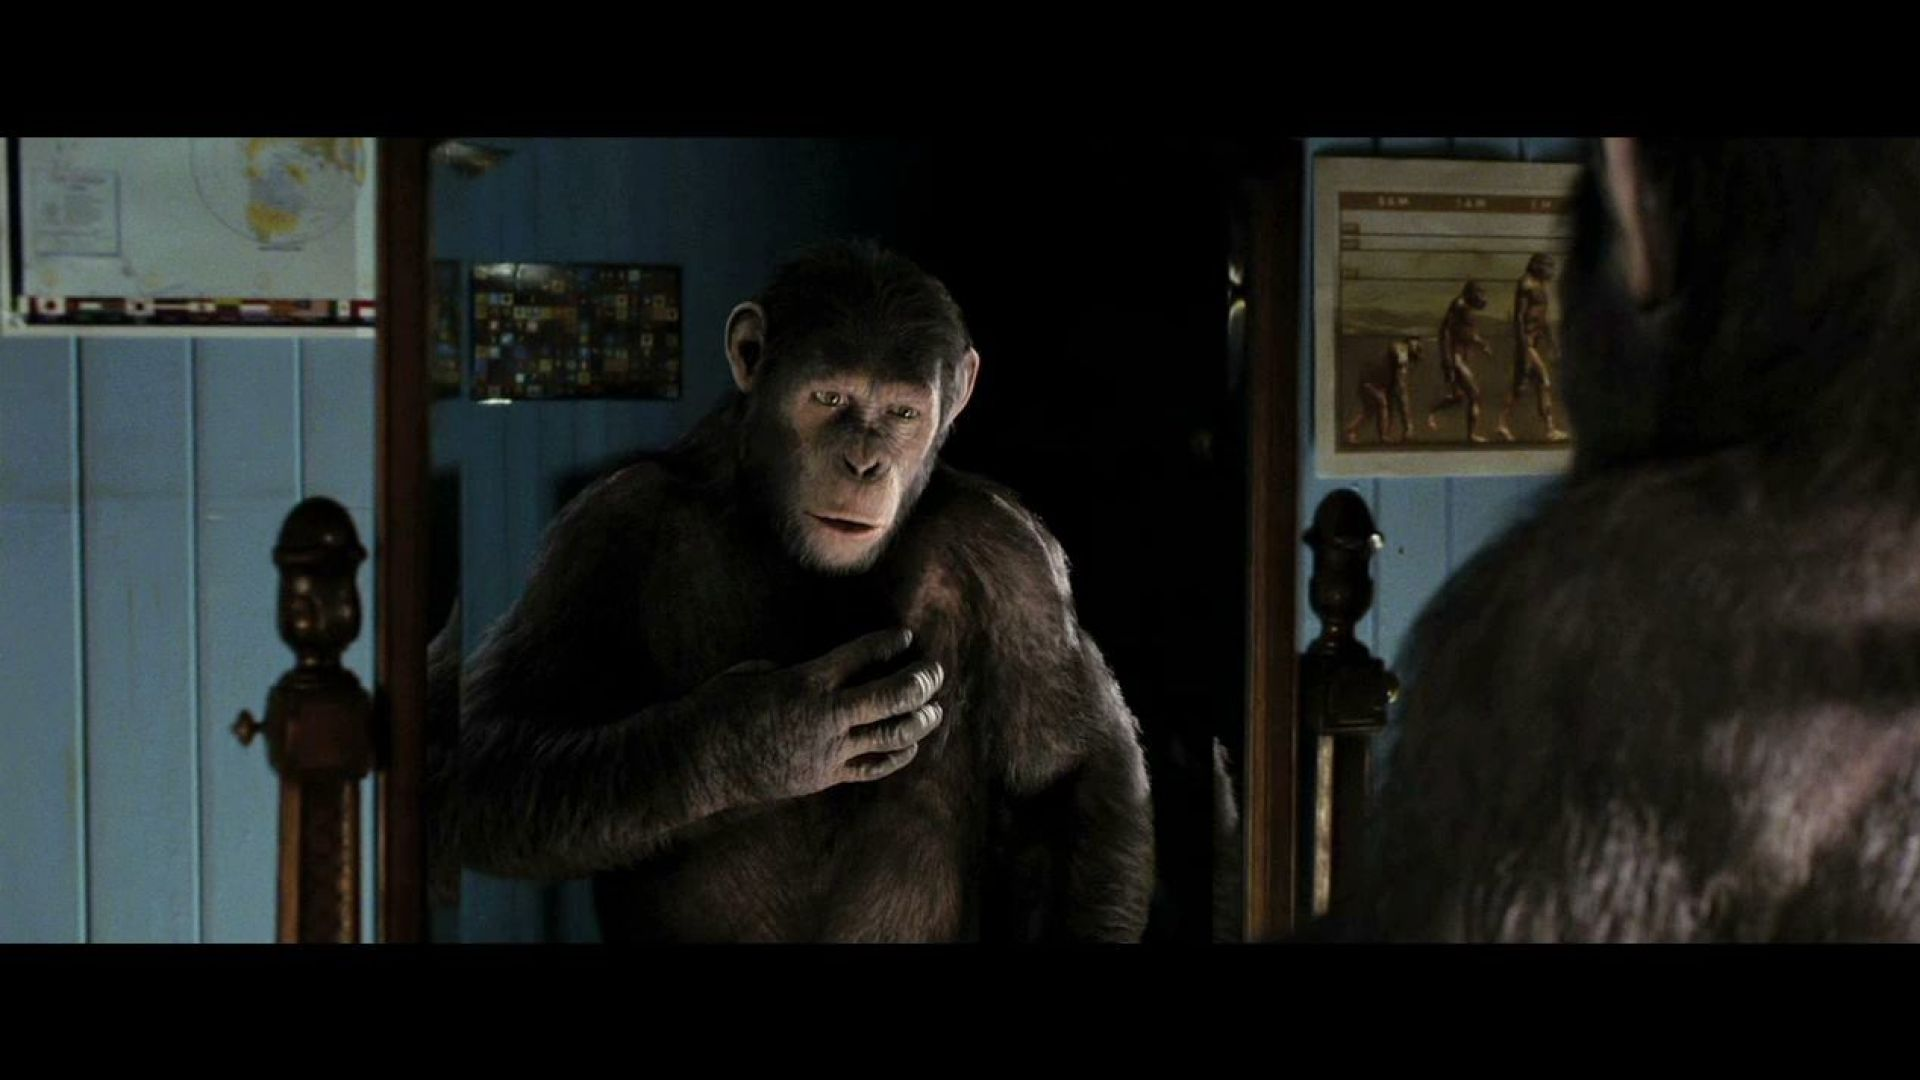 The apes attack, Rise of the Planet of the Apes